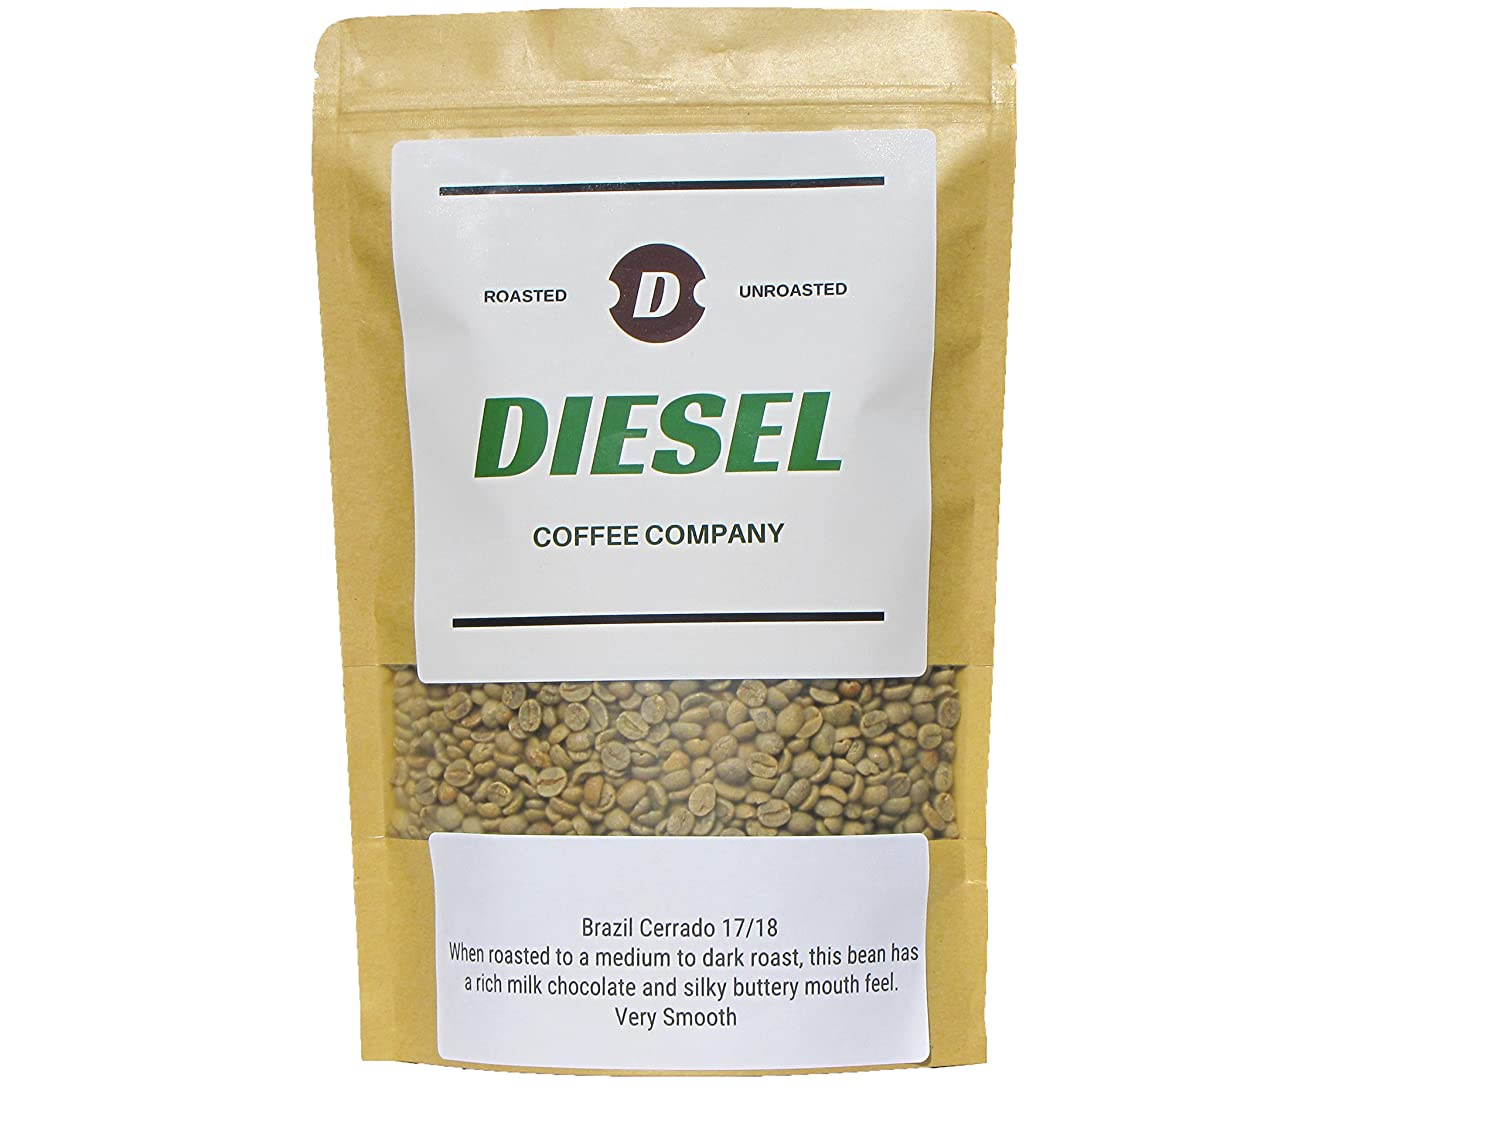 Unroasted-Green Whole Coffee Bean,Brazil Cerrado For Roasting,3lb By Diesel Coffee Company. Cupping Notes: chocolate notes, medium body, nutty, sweet, caramel, clean finish